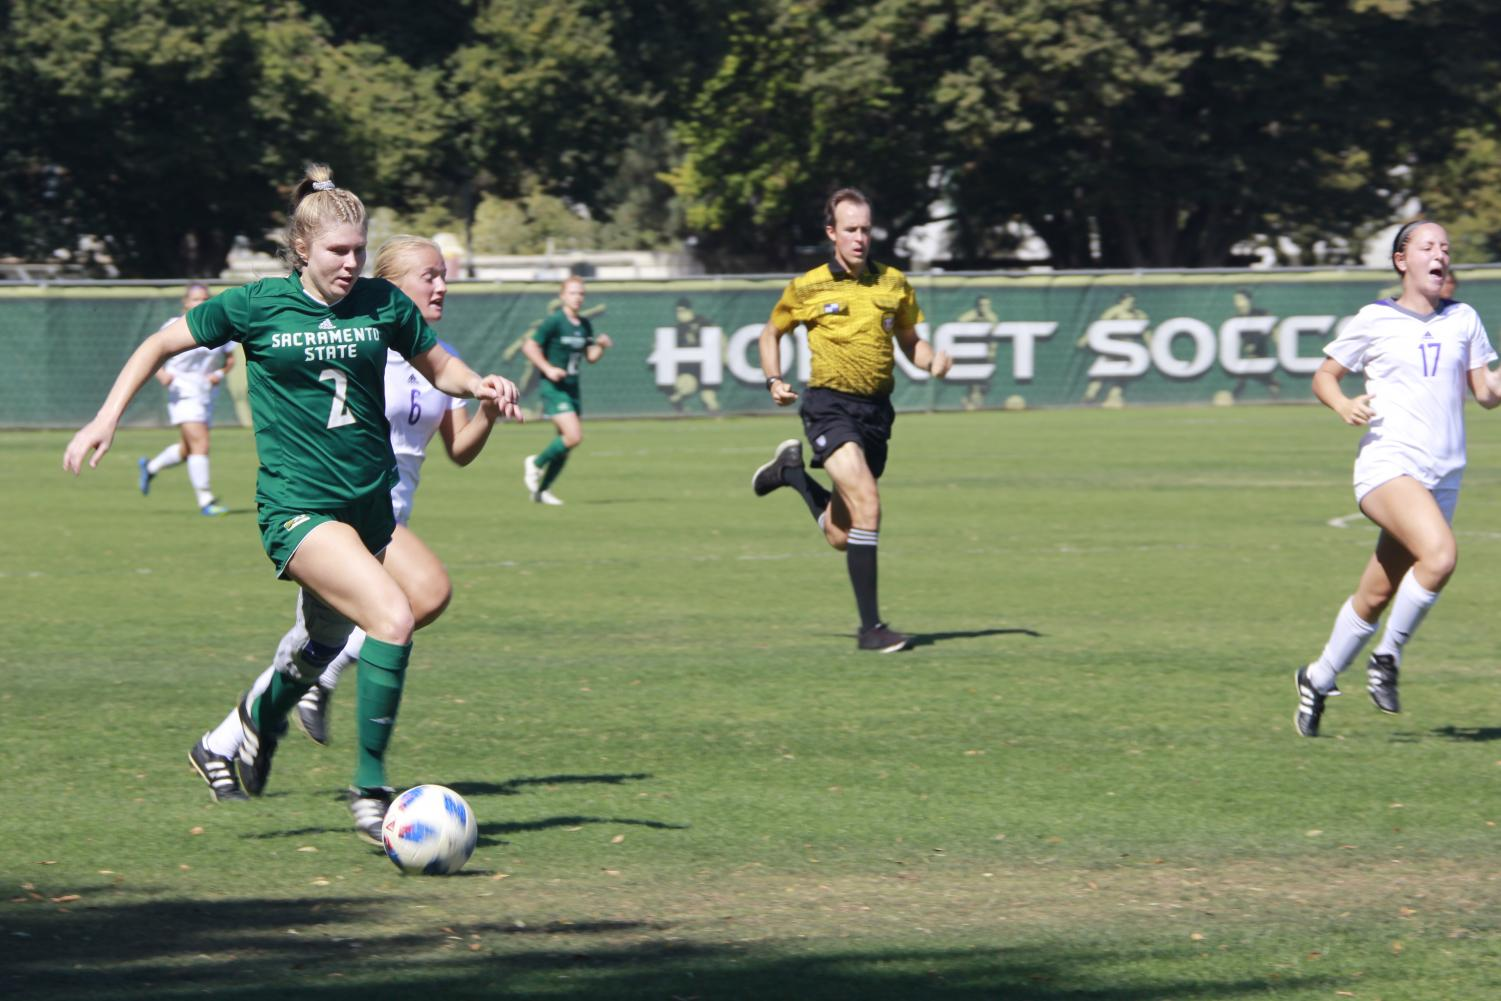 Sac State sophomore midfielder Skylar Littlefield dribbles up the field in a 1-0 loss to Weber State on Sunday at Hornet Field.